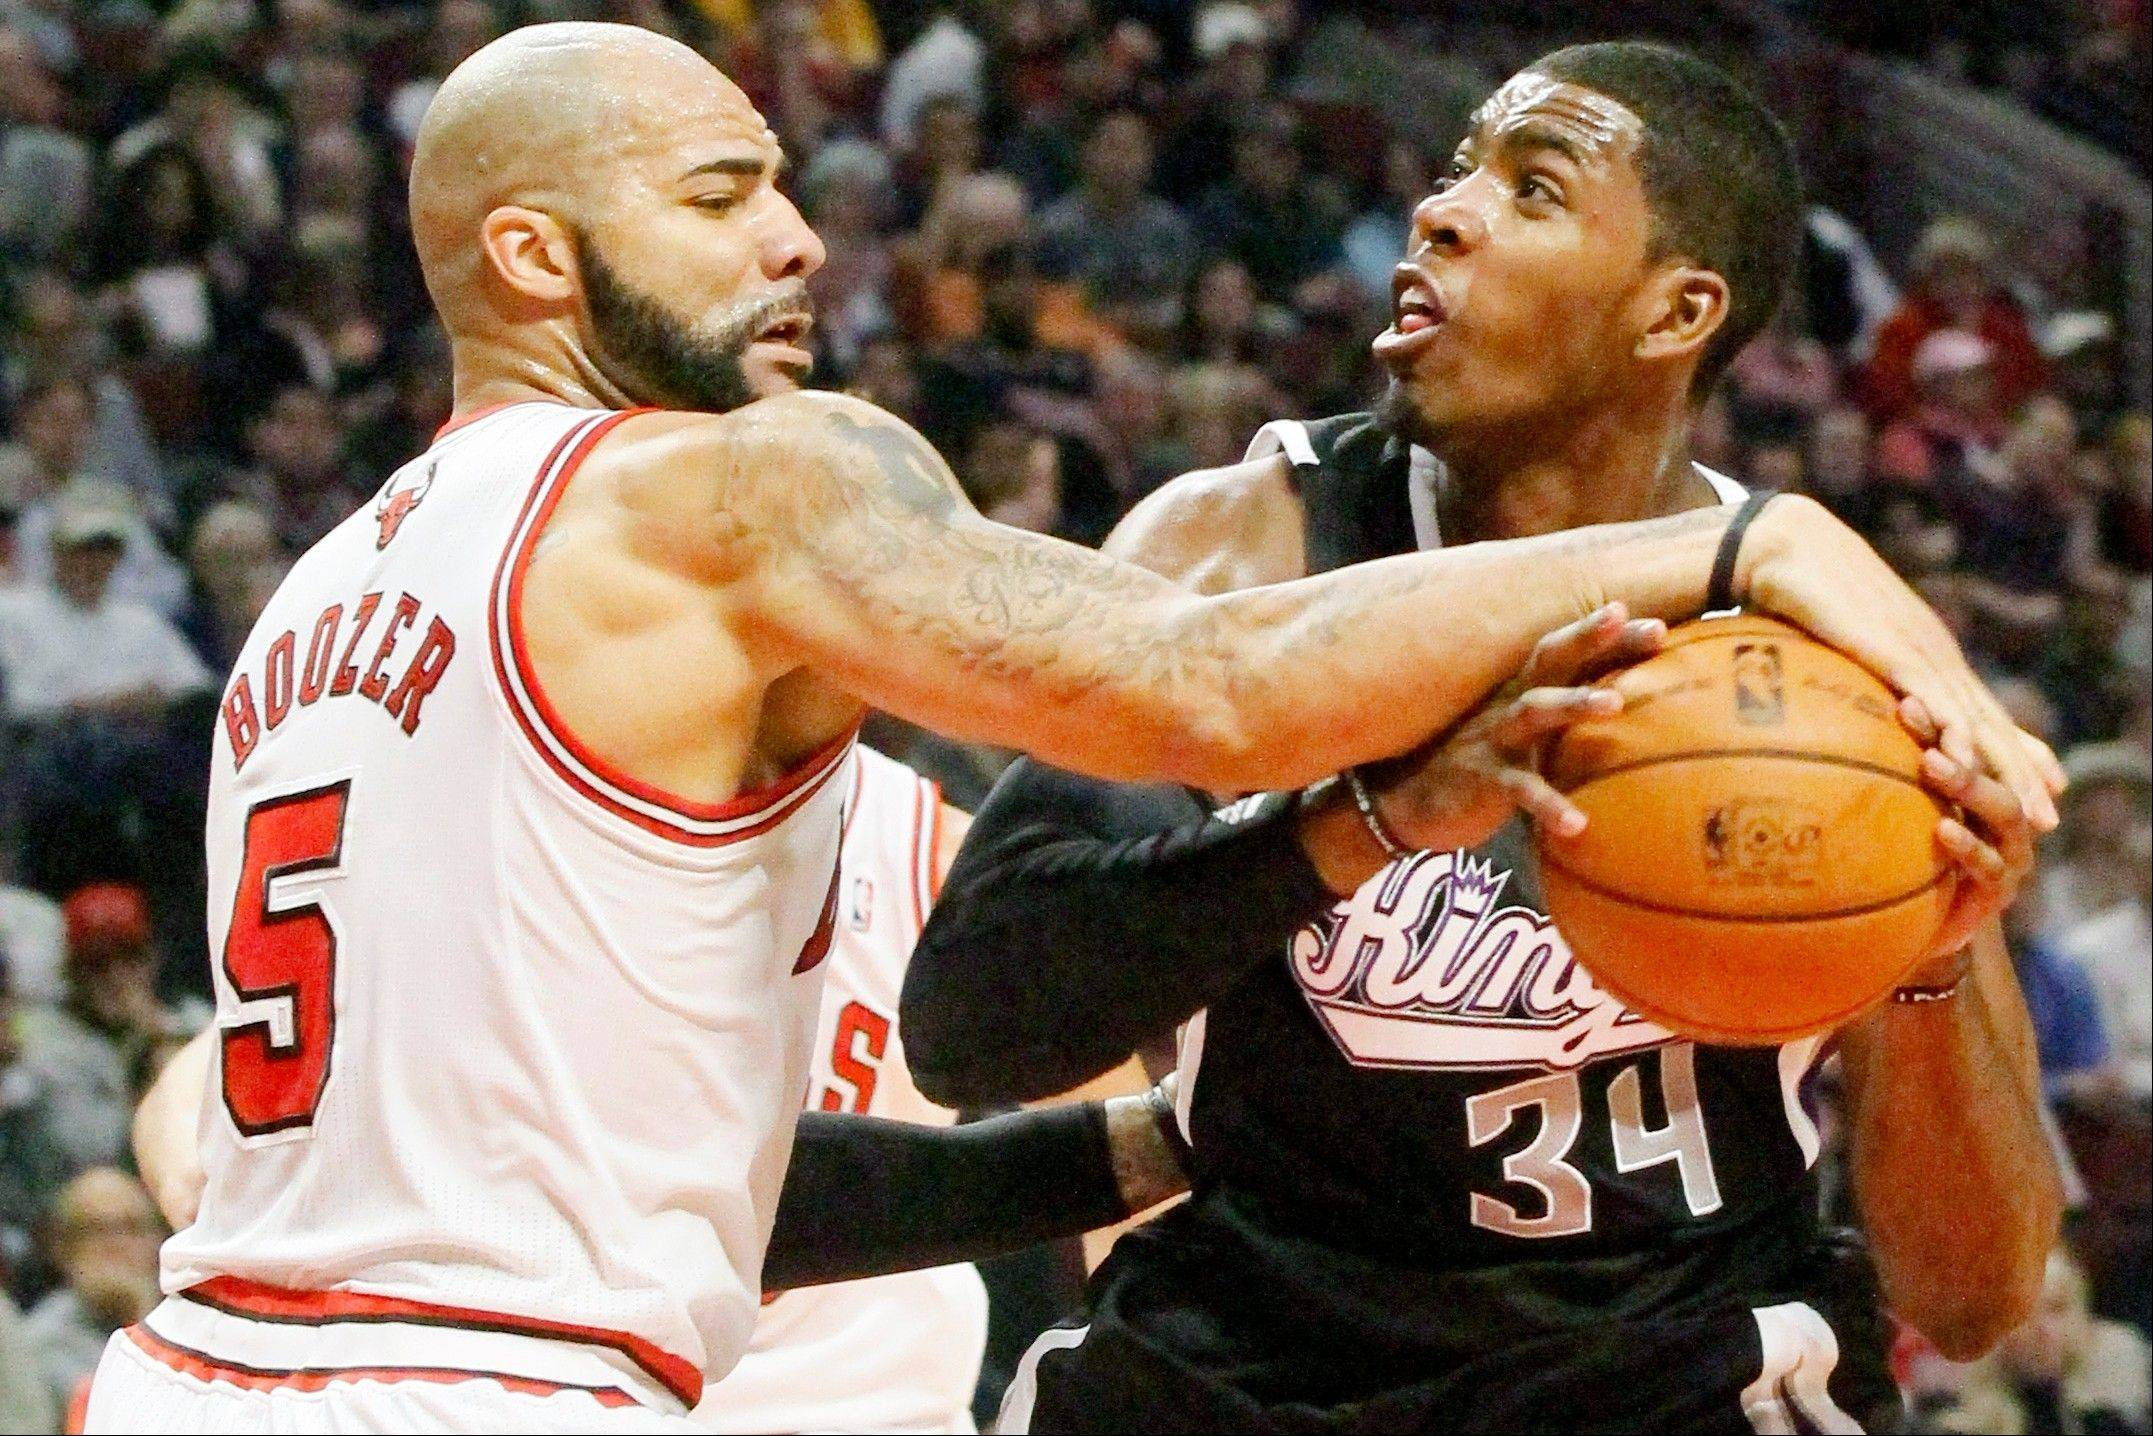 Bulls forward Carlos Boozer knocks the ball out of the hands of Sacramento Kings forward Jason Thompson during the first half Wednesday night.